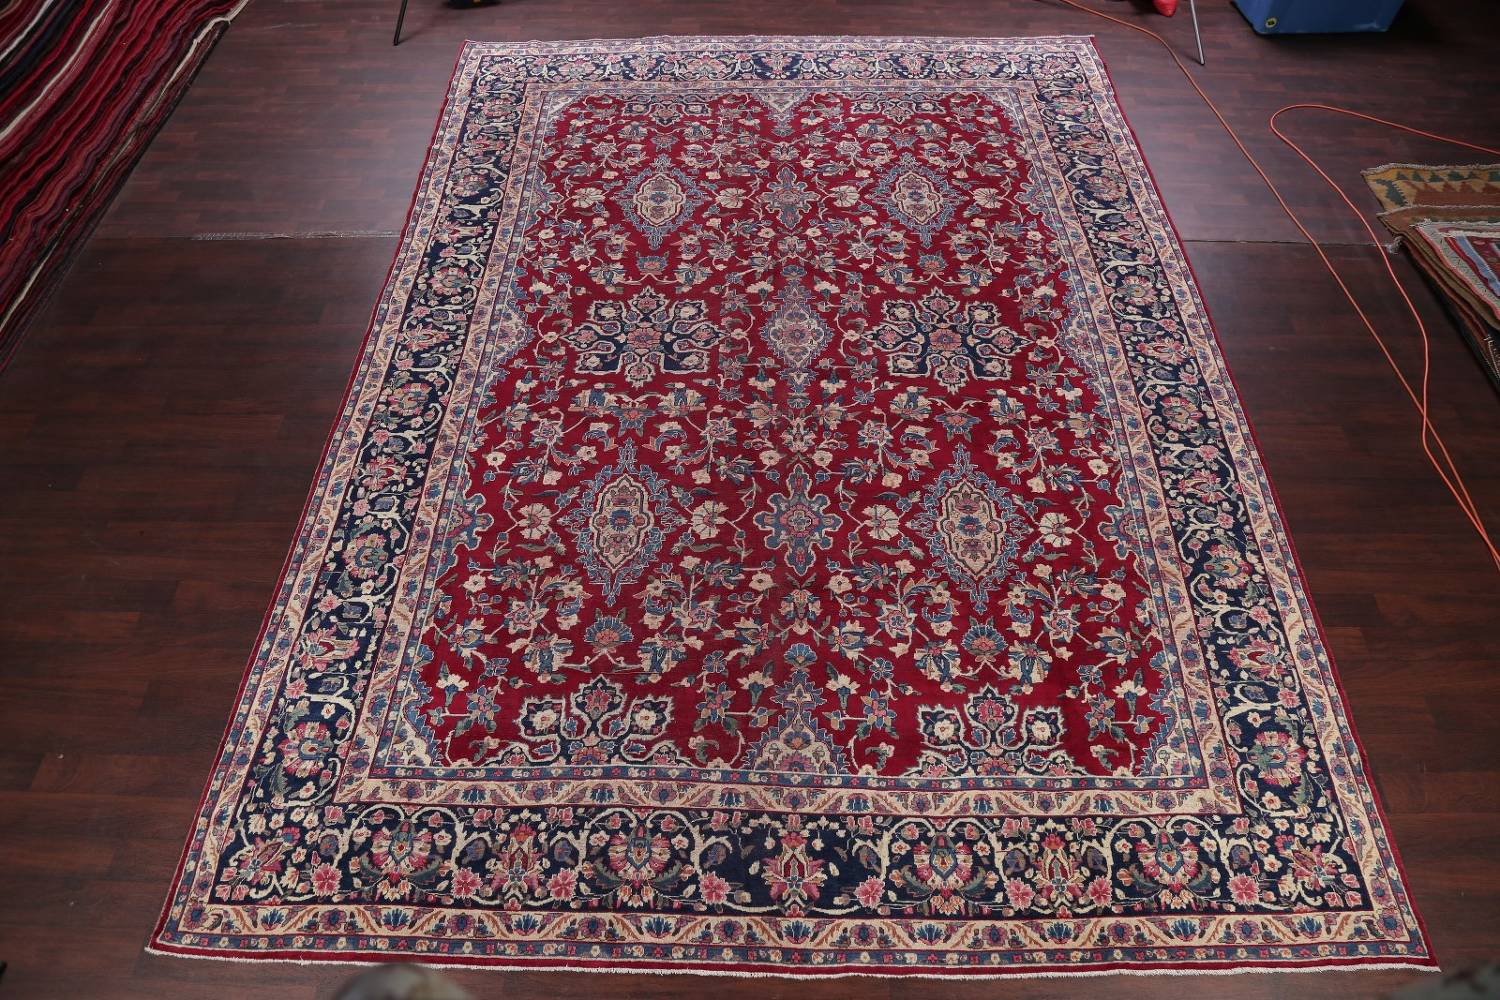 All-Over Floral 11x16 Yazd Persian Area Rug image 2